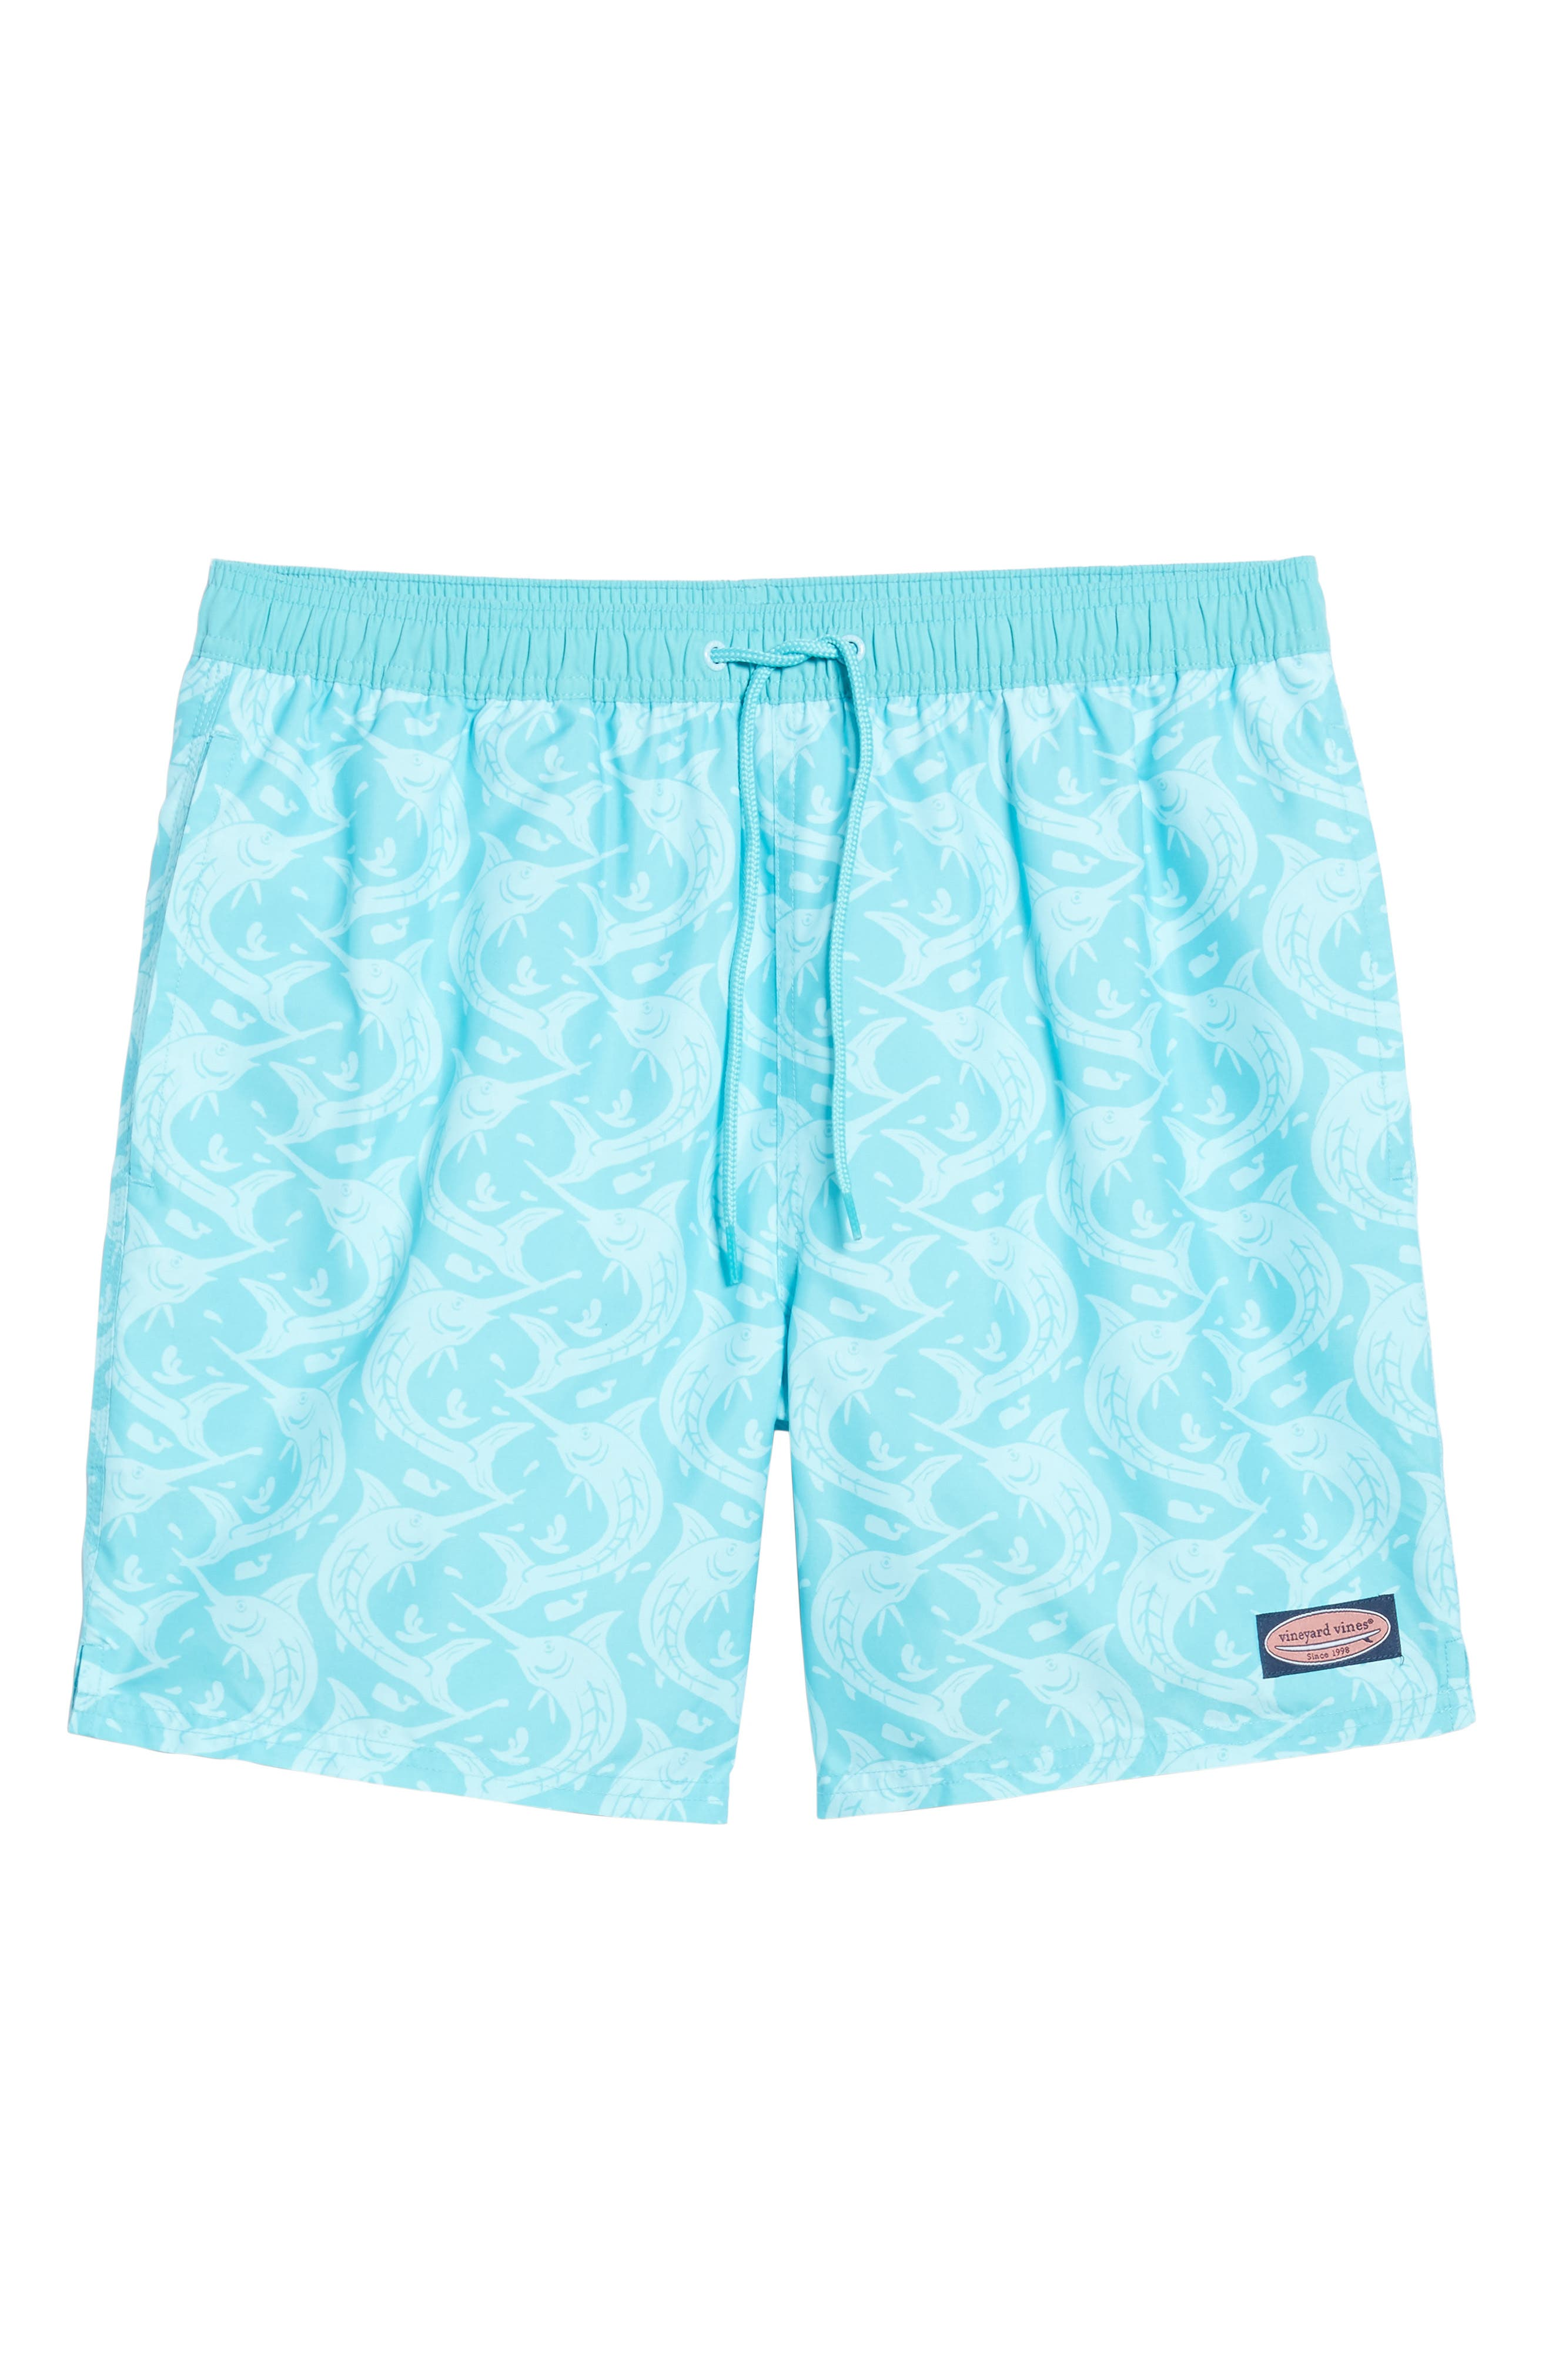 Marlin Out of Water Chappy Swim Trunks,                             Alternate thumbnail 6, color,                             Turquoise